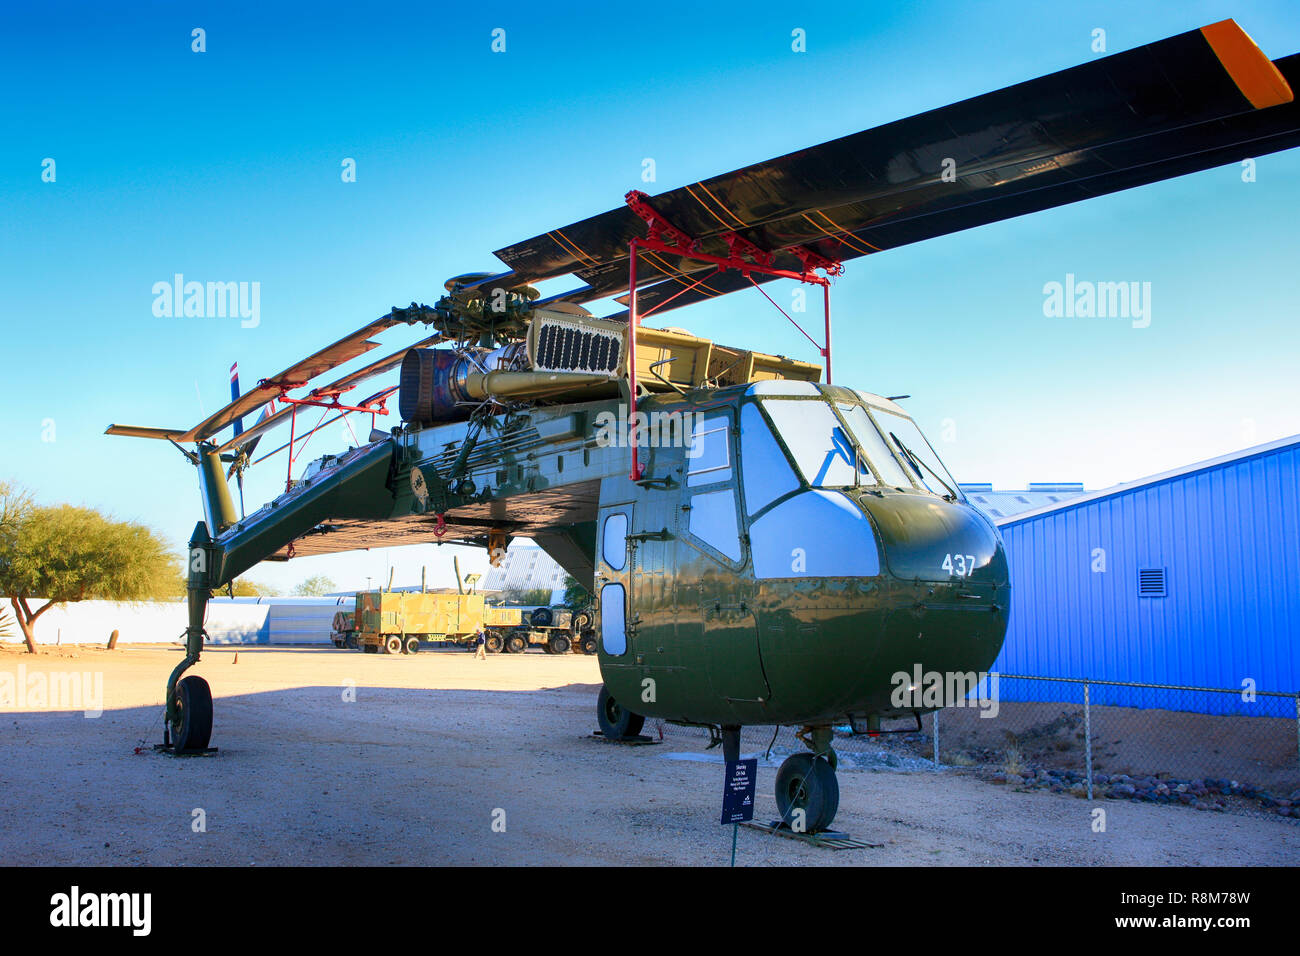 Sikorsky H-5G Tarhe heavy lift helicopter on display at the Pima Air & Space Museum in Tucson, AZ - Stock Image